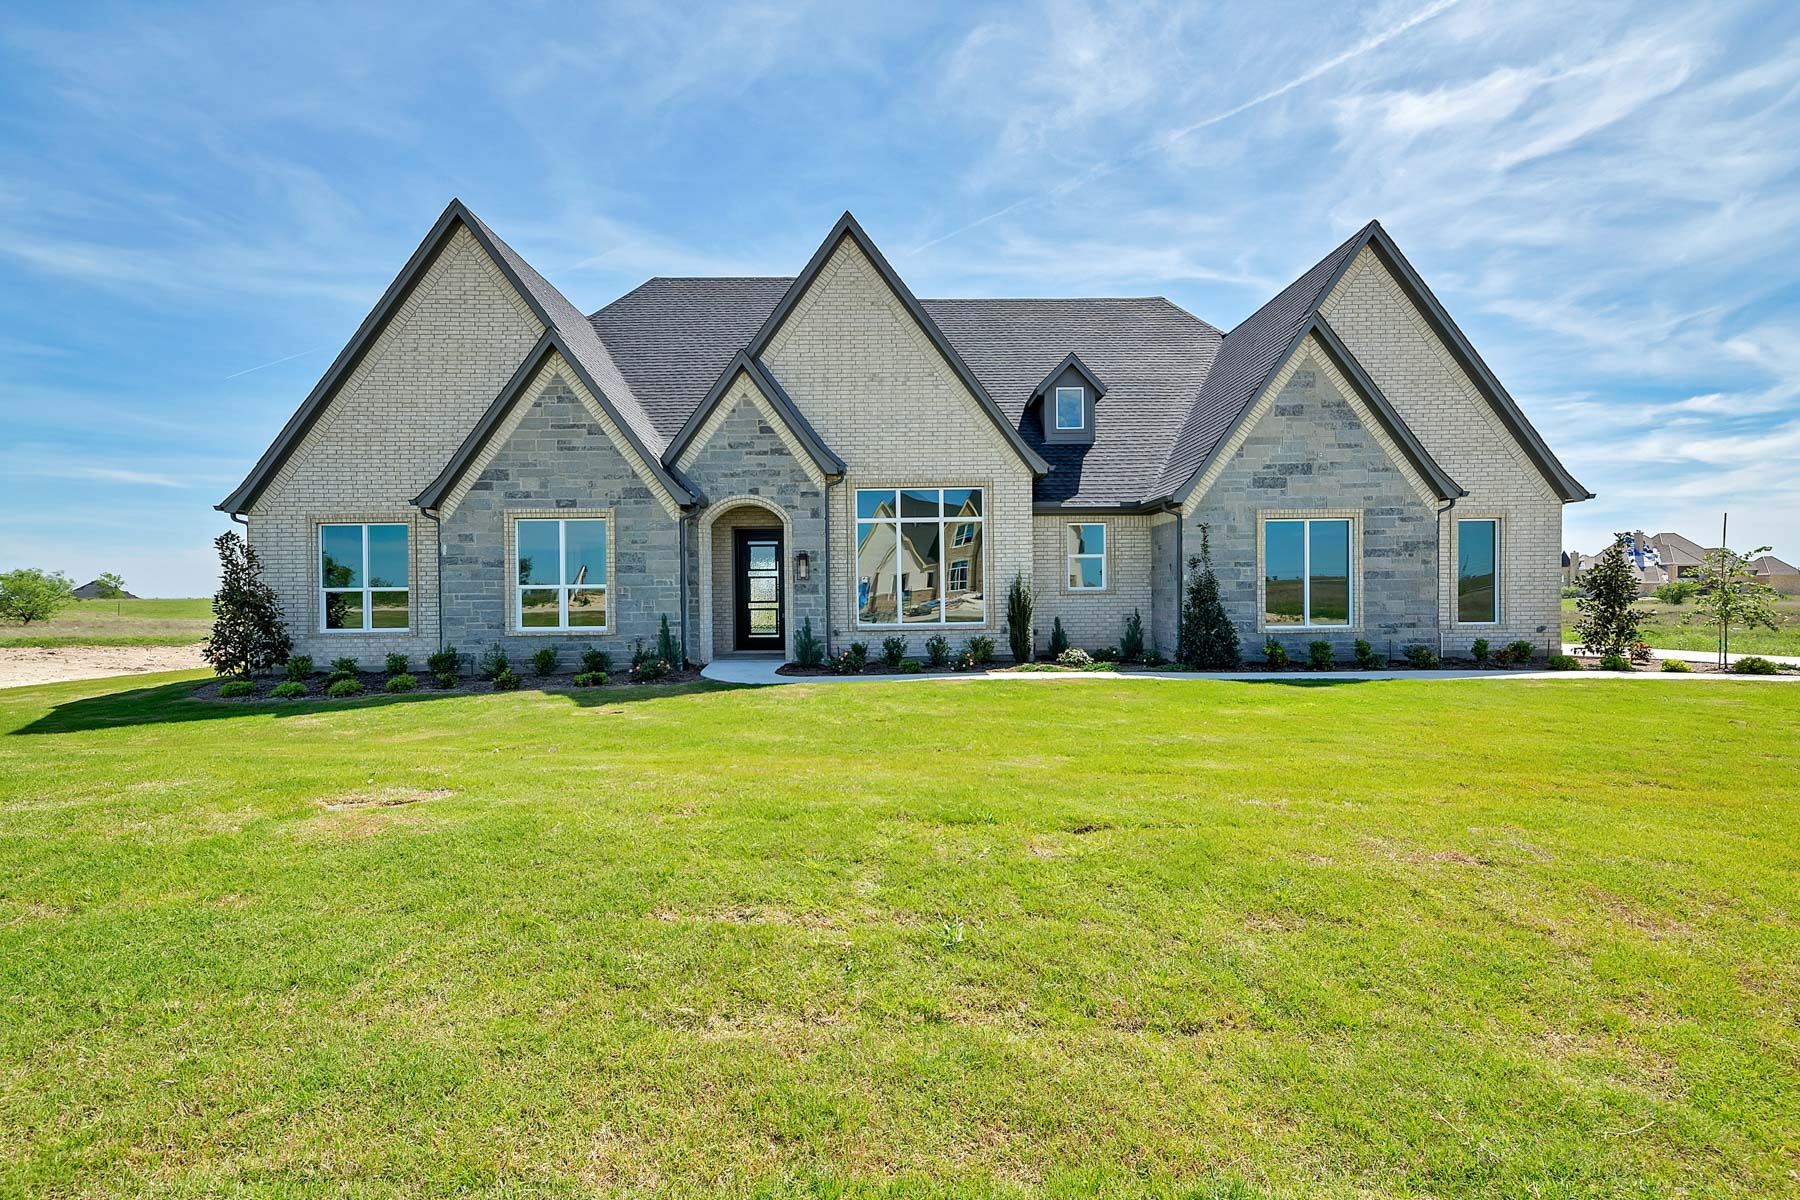 Single Family Home for Sale at 12324 Dolce Vita Drive, Fort Worth Fort Worth, Texas, 76126 United States